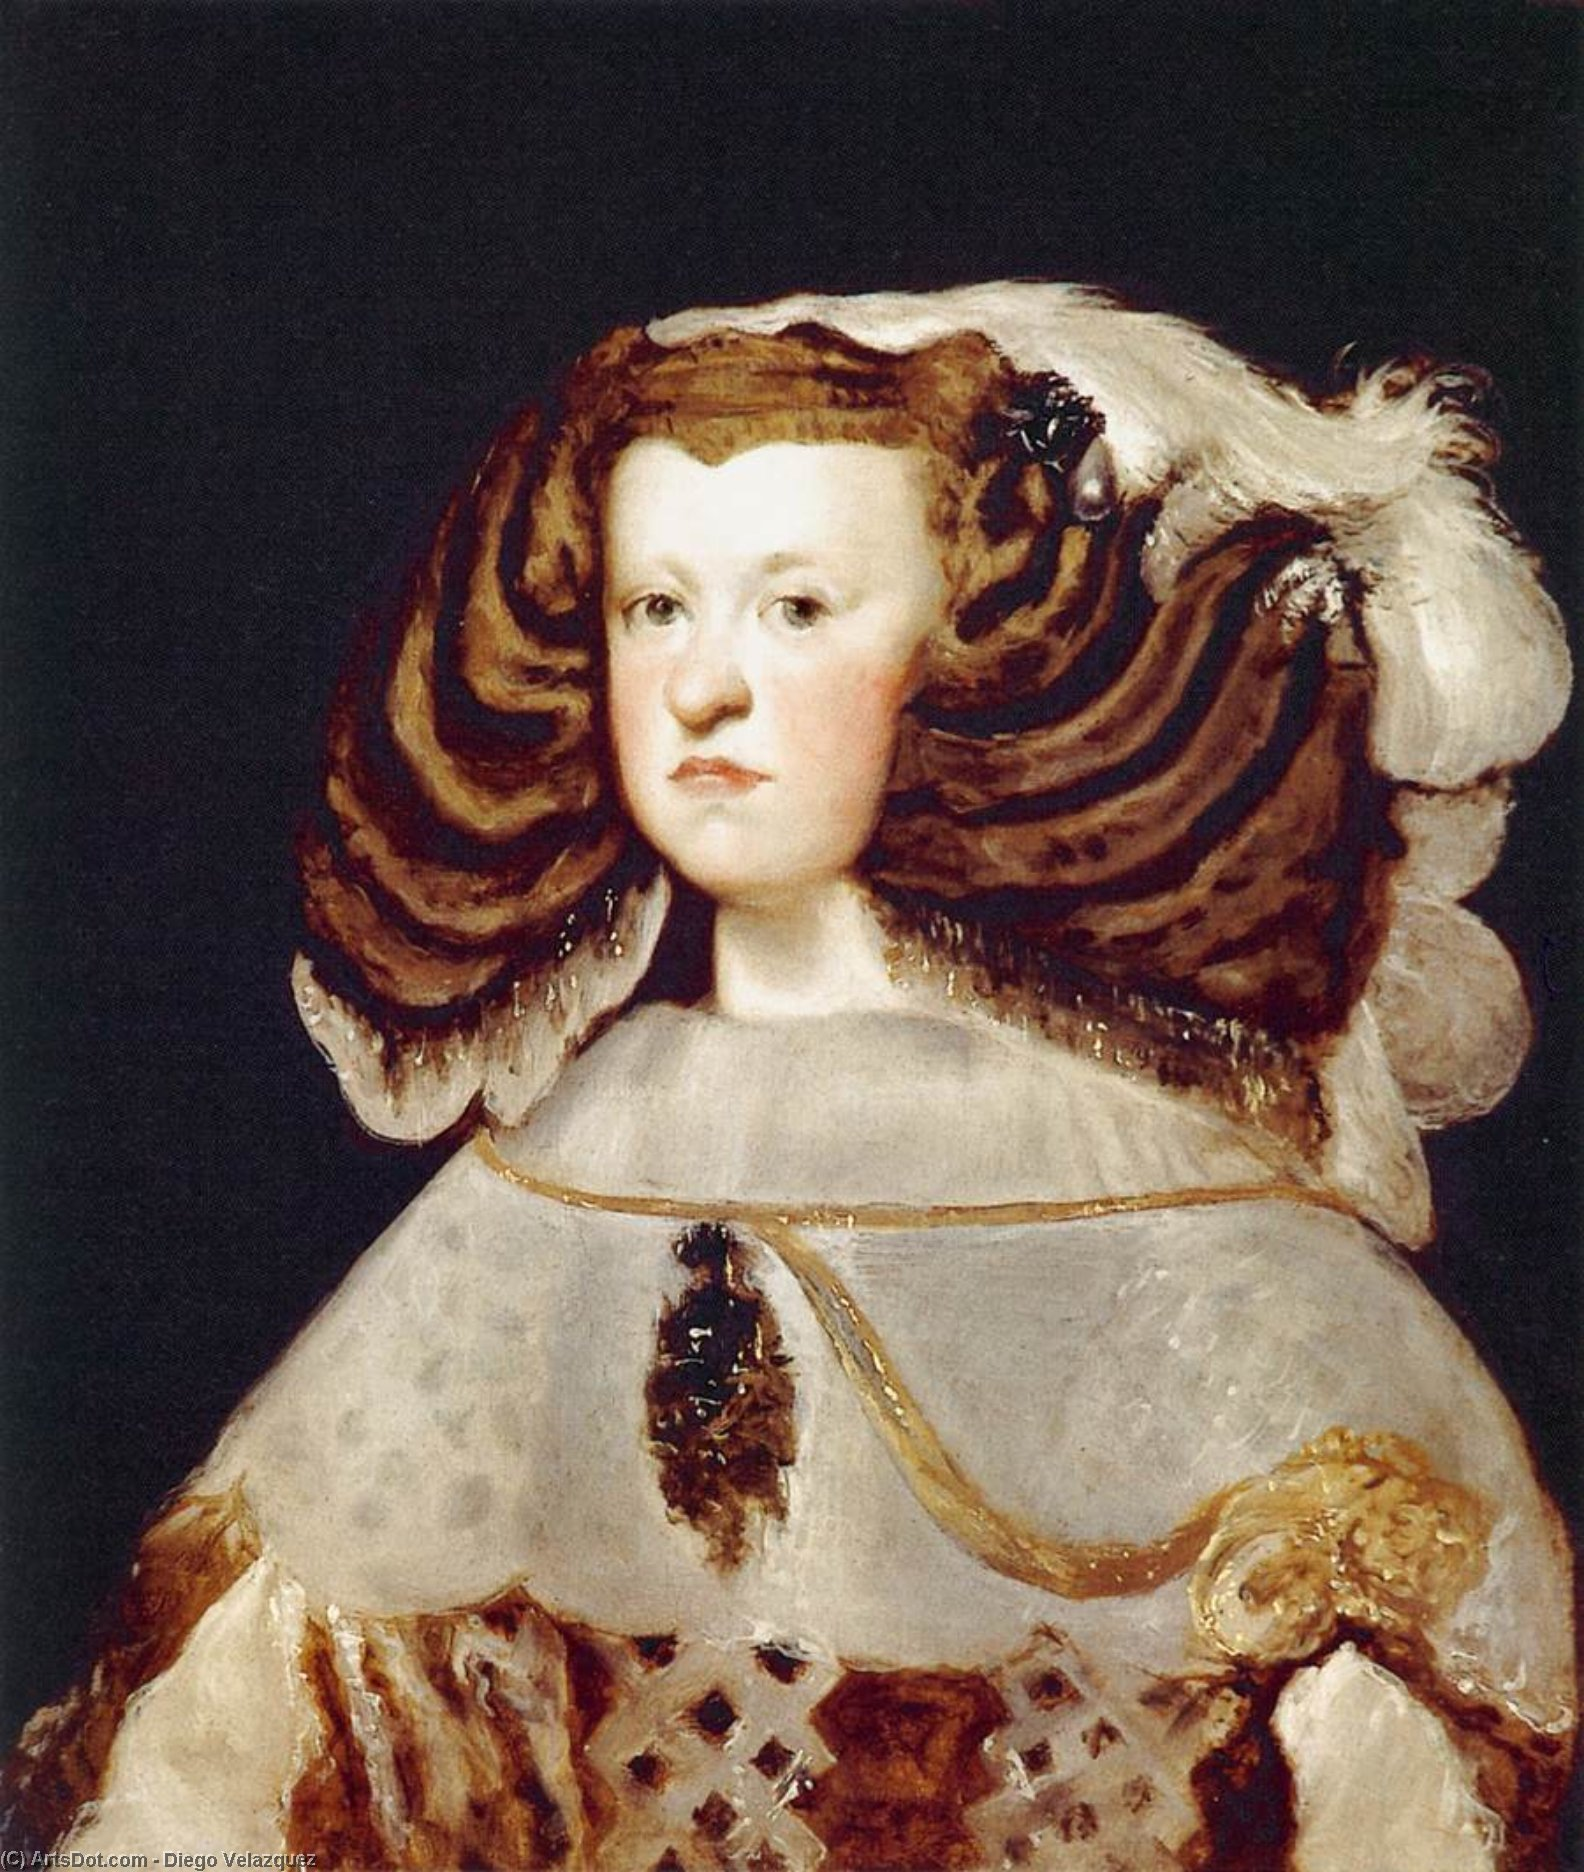 Portrait of Mariana of Austria, Queen of Spain, Oil On Canvas by Diego Velazquez (1599-1660, Spain)